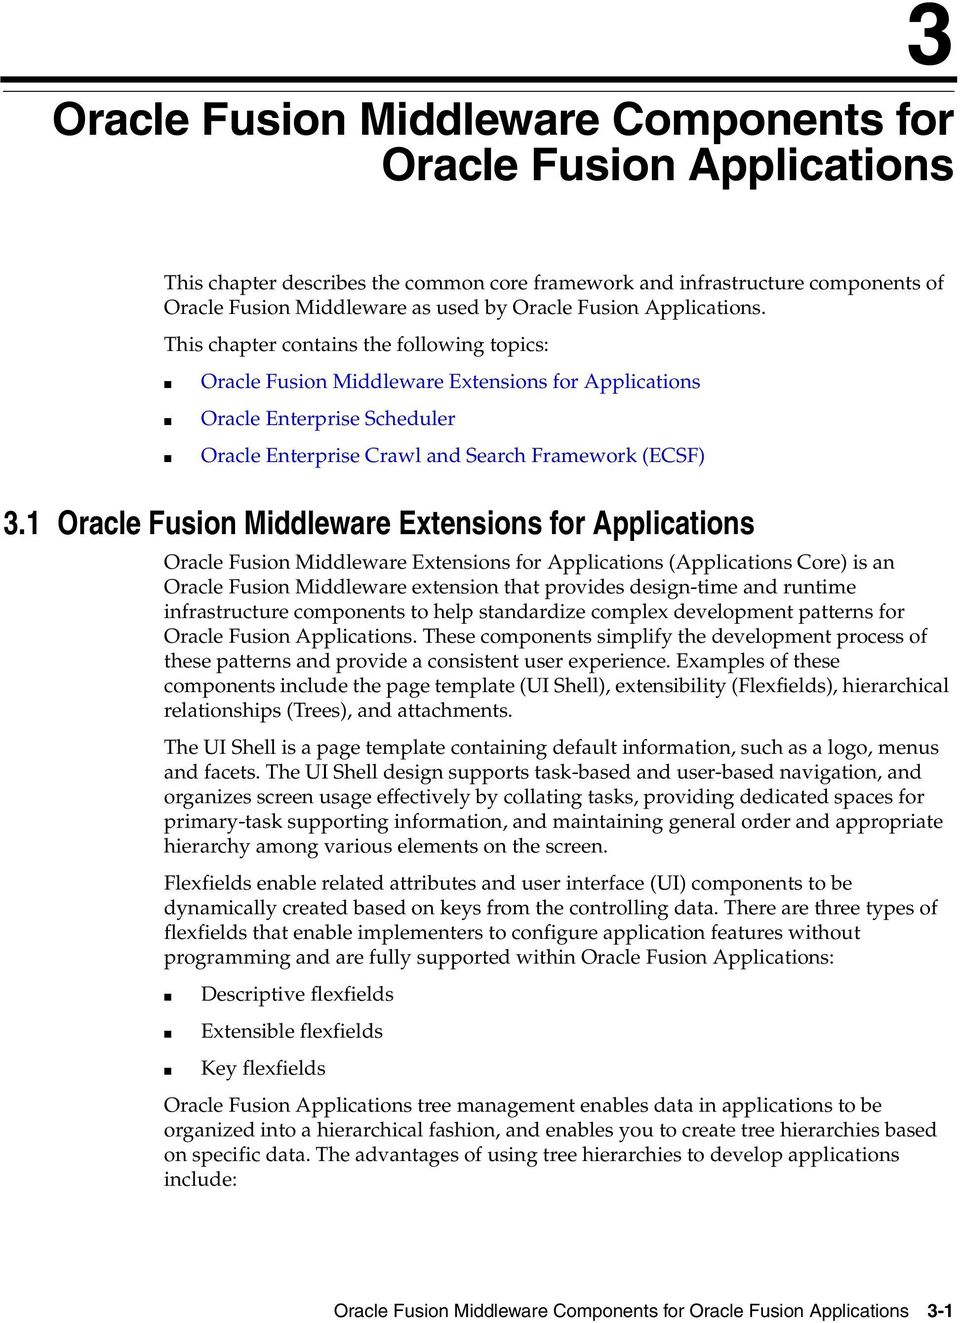 1 Oracle Fusion Middleware Extensions for Applications Oracle Fusion Middleware Extensions for Applications (Applications Core) is an Oracle Fusion Middleware extension that provides design-time and